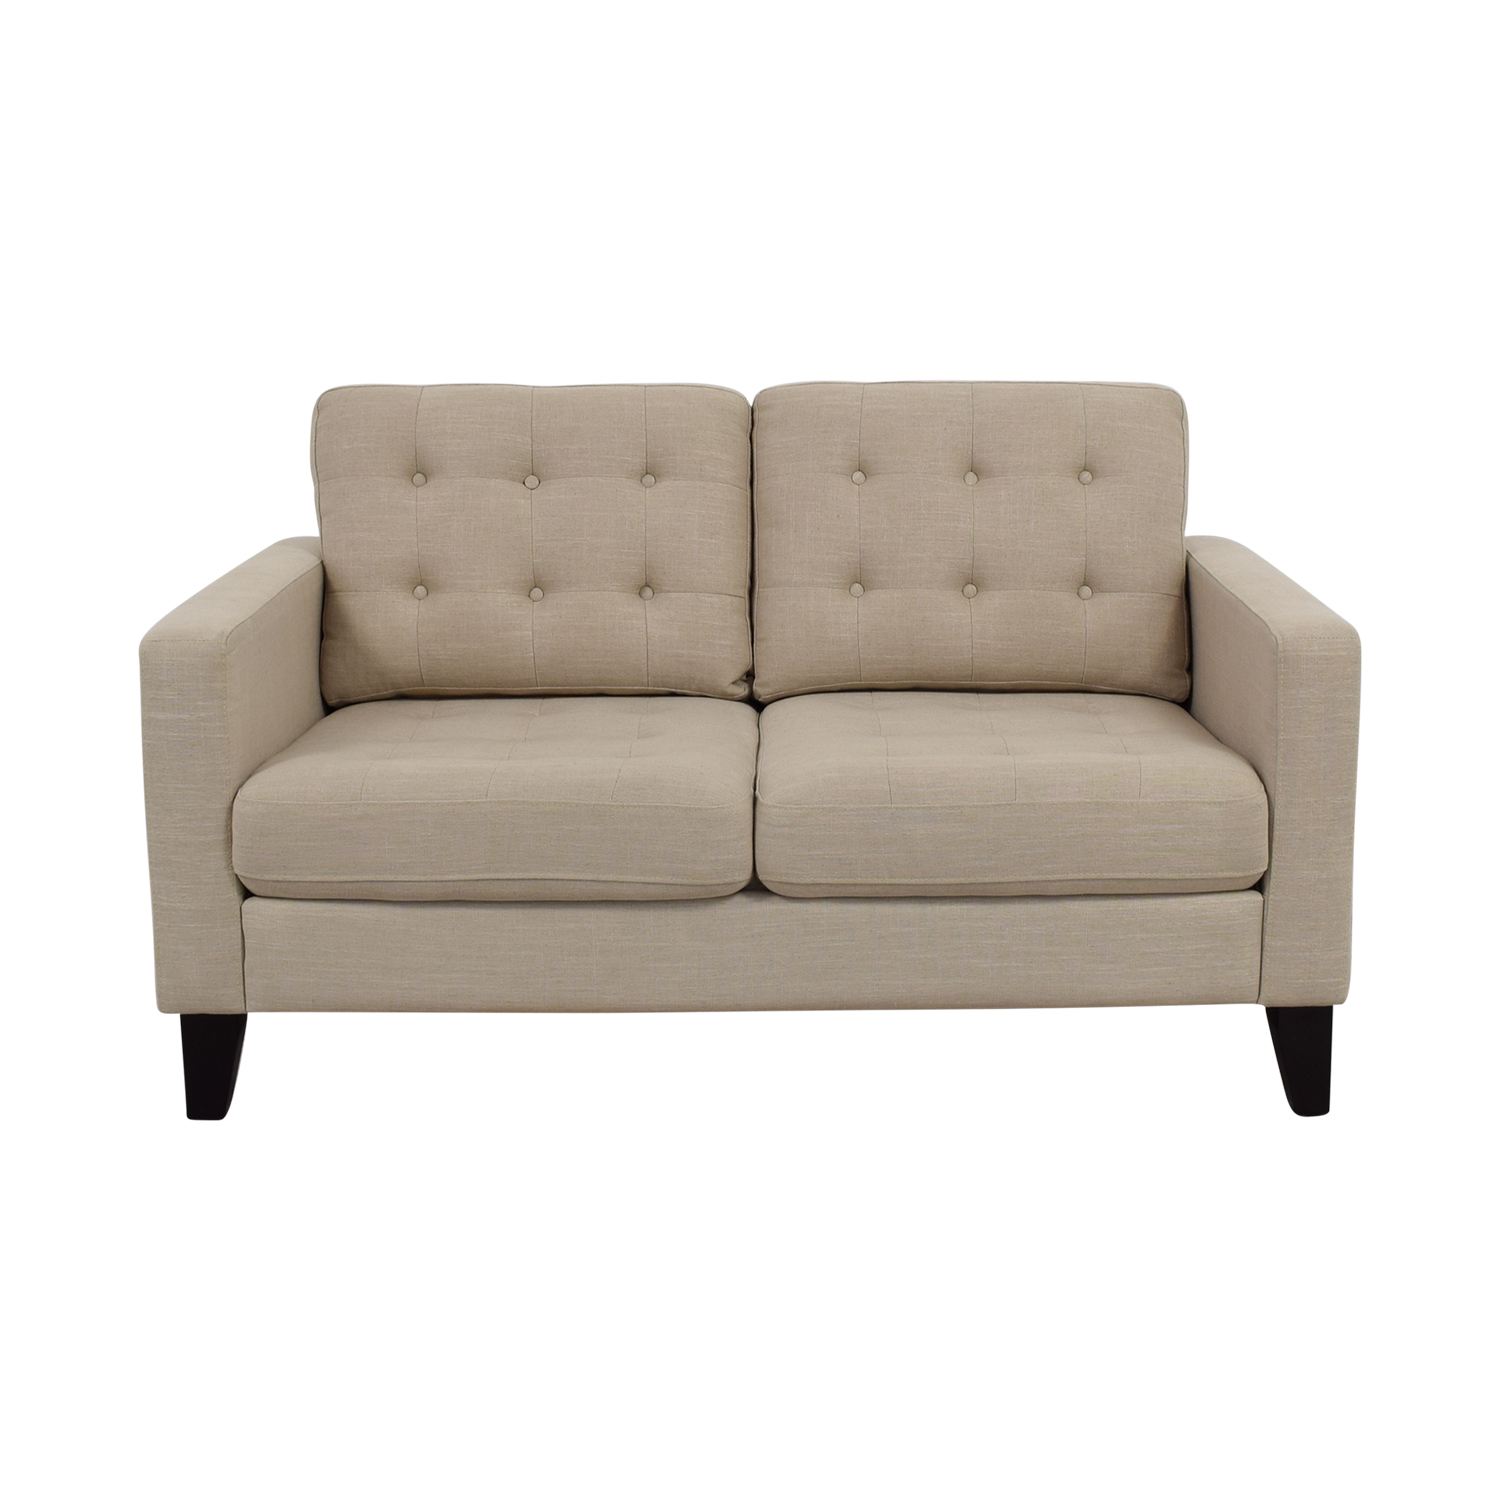 imports pier sofas off tufted putty loveseat tan